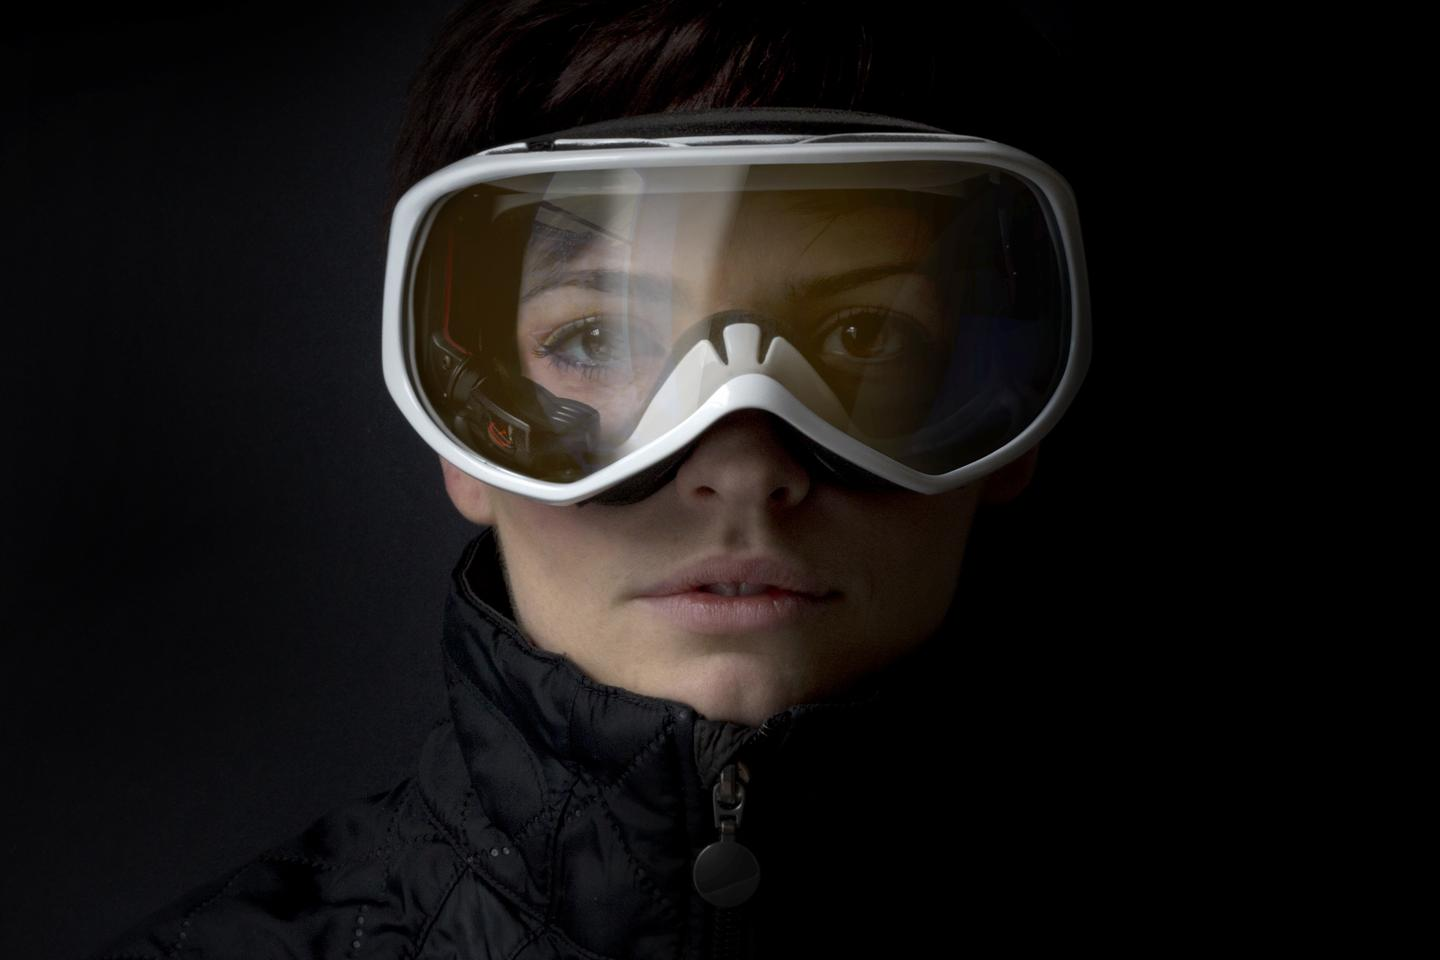 Snow2 displays speed, navigation and even texts and voice calls in the skier's and snowboarder's line of vision